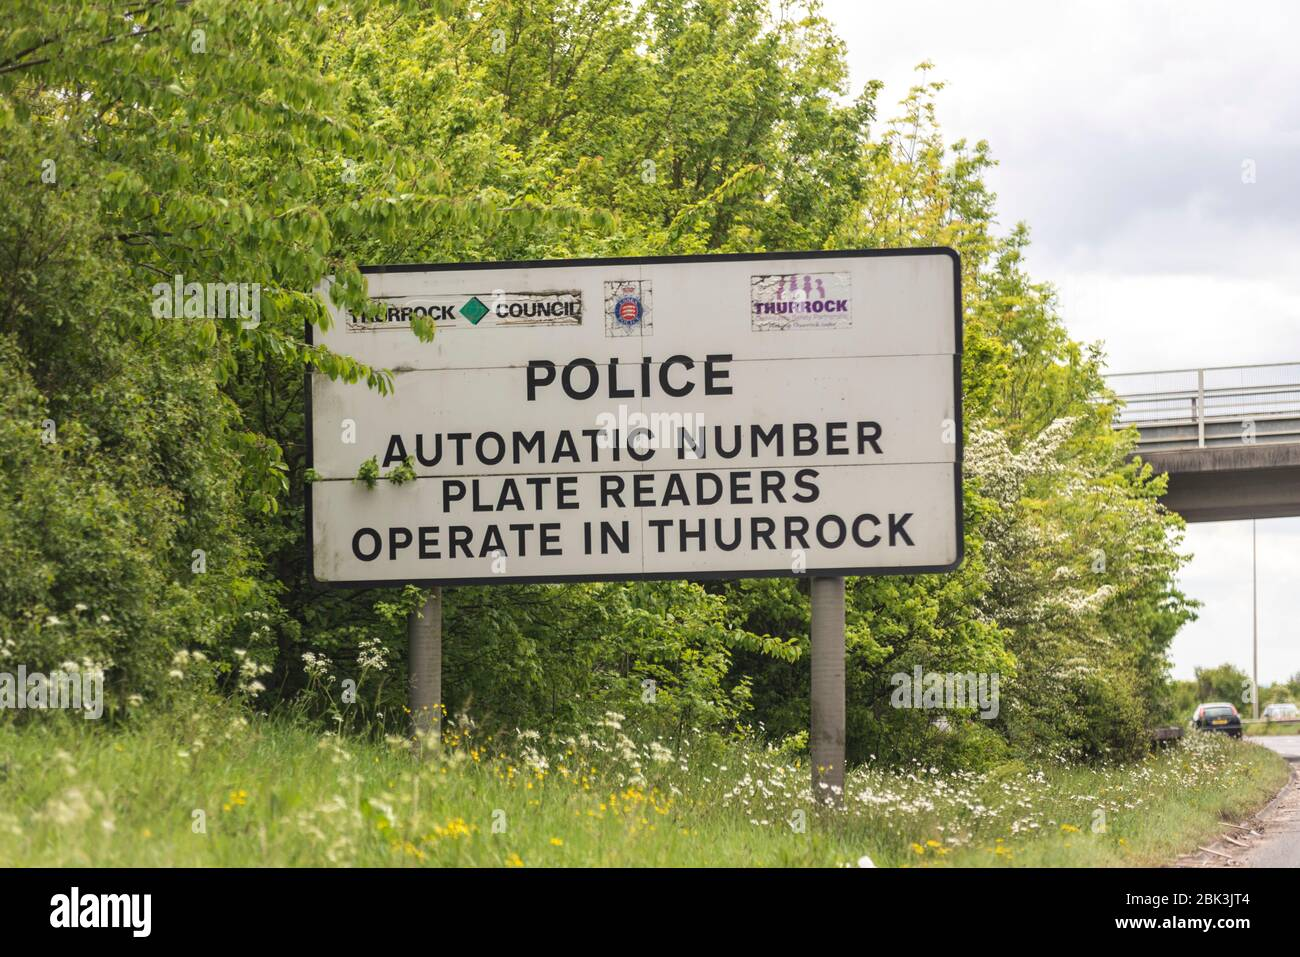 Police automatic number plate readers operate in Thurrock sign, Essex, UK. ANPR warning sign on A13 near Stanford le Hope. Number Plate Recognition Stock Photo